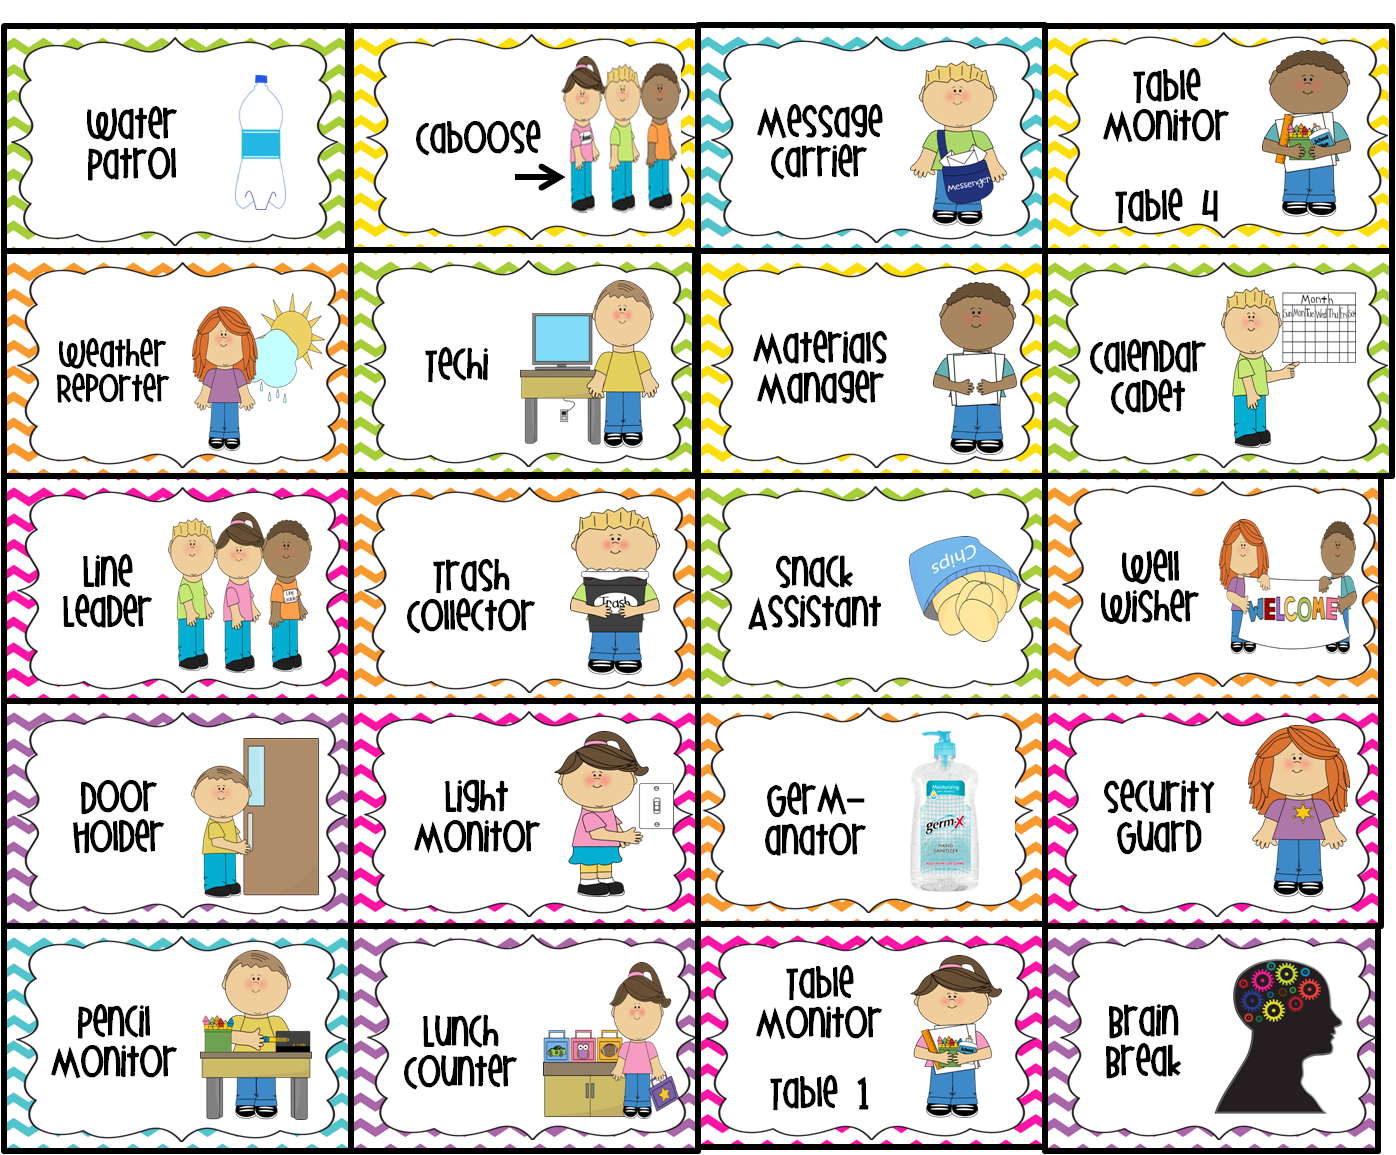 Classroom Jobs Printable | Water Patrol (2), Caboose, Message Carrier, Table